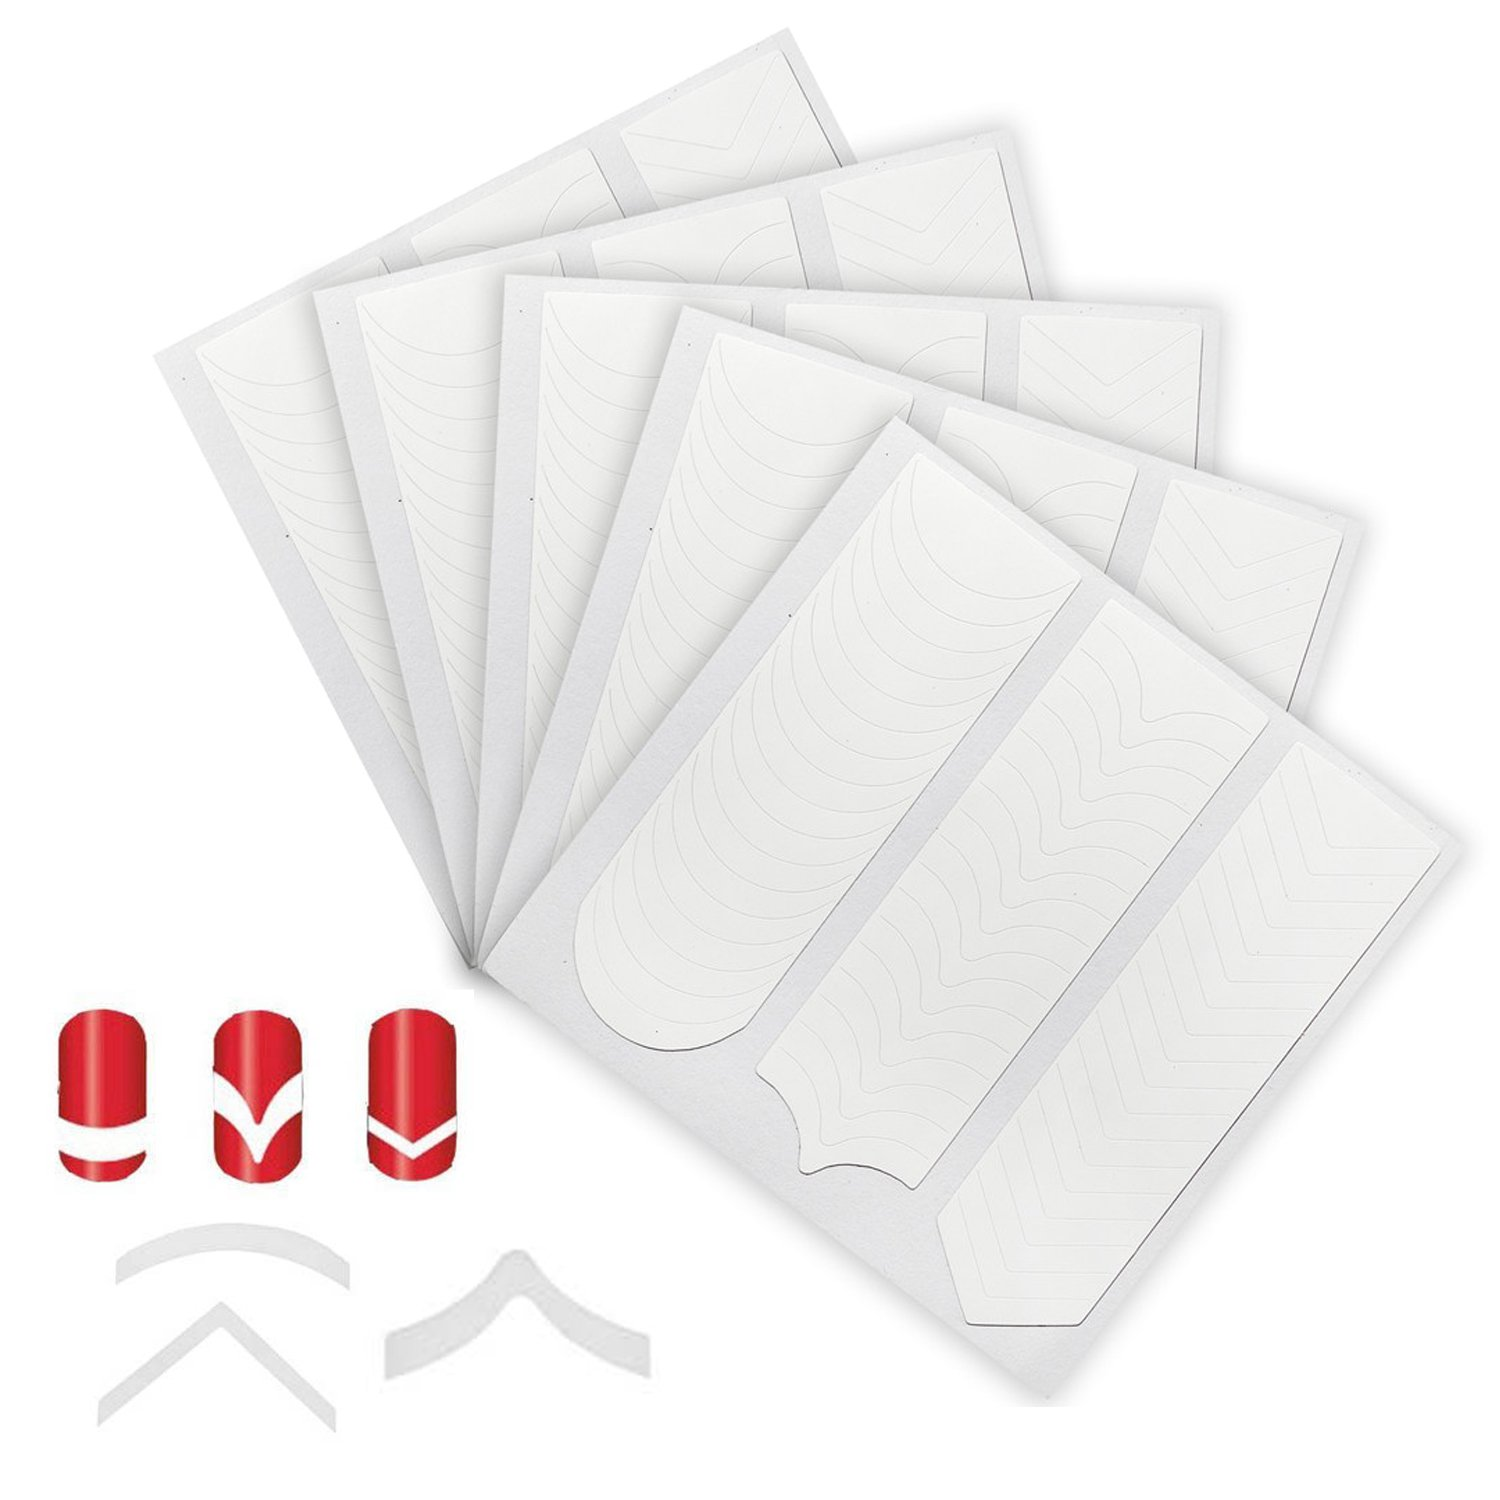 Fantastic Price 5 Sets With 240pcs Professional Nail Art Salons Quality White Guides Stickers / Strips In 3 Different Shapes Chevron, Arched And Arrow For French Nails Manicure And Designs / Patterns Application By VAGA